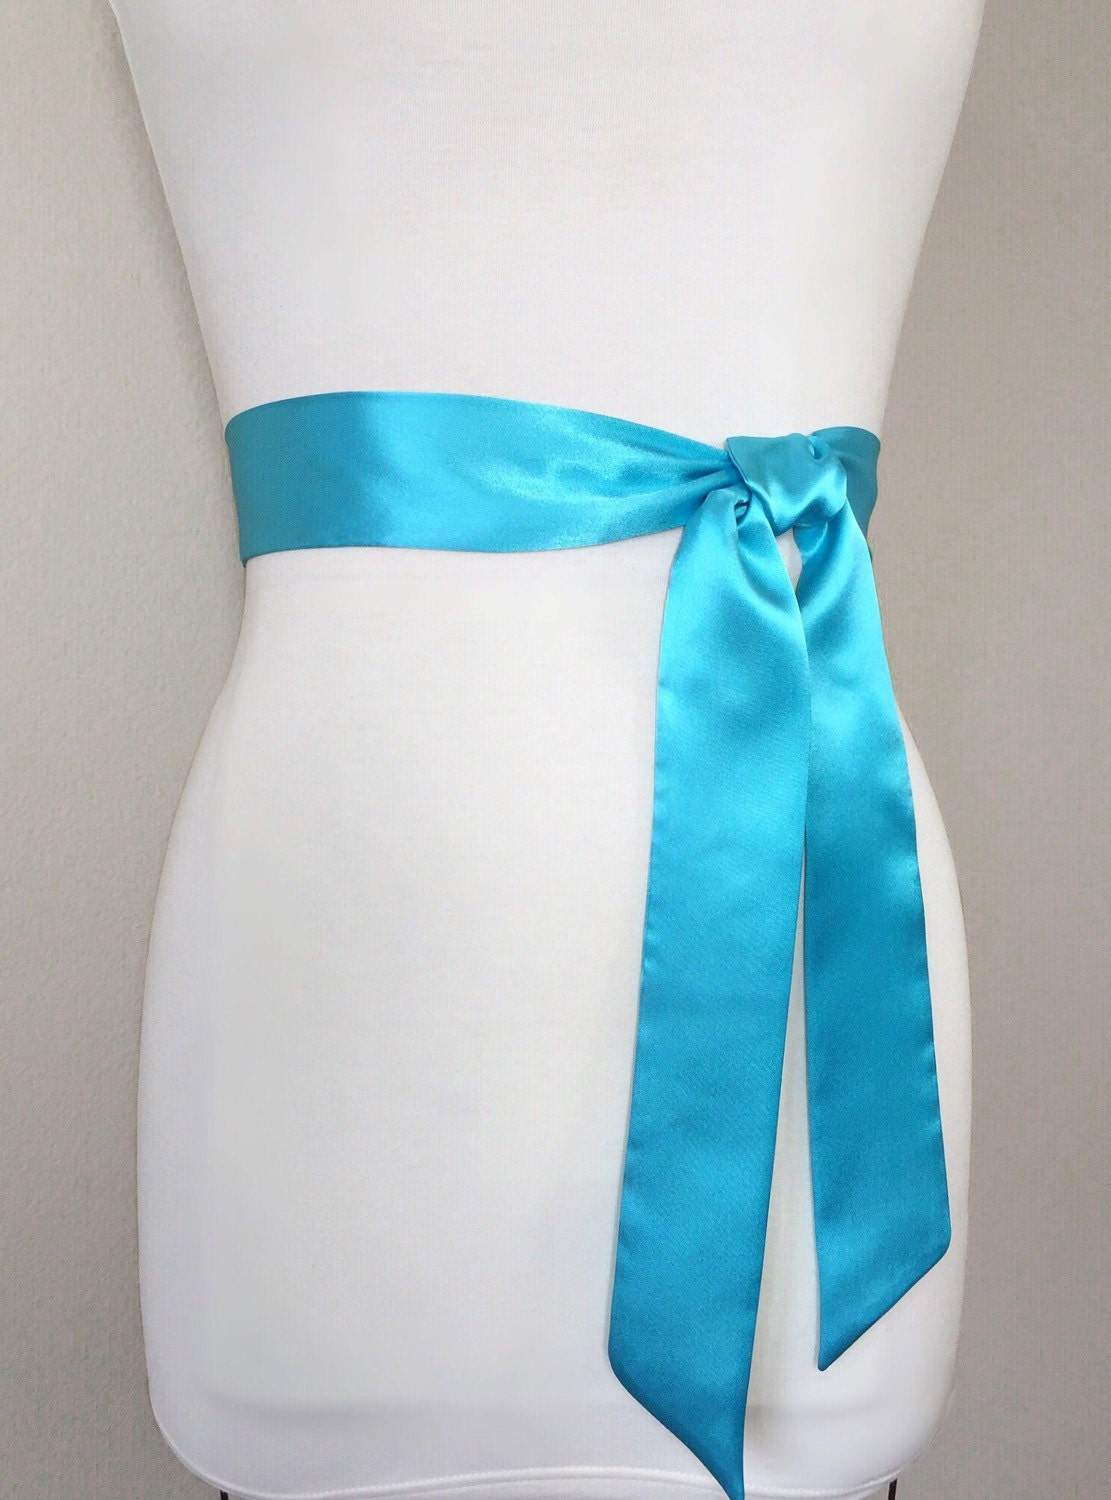 Aqua satin sash belt aqua blue sash aqua bridesmaid sash for Blue sash for wedding dress